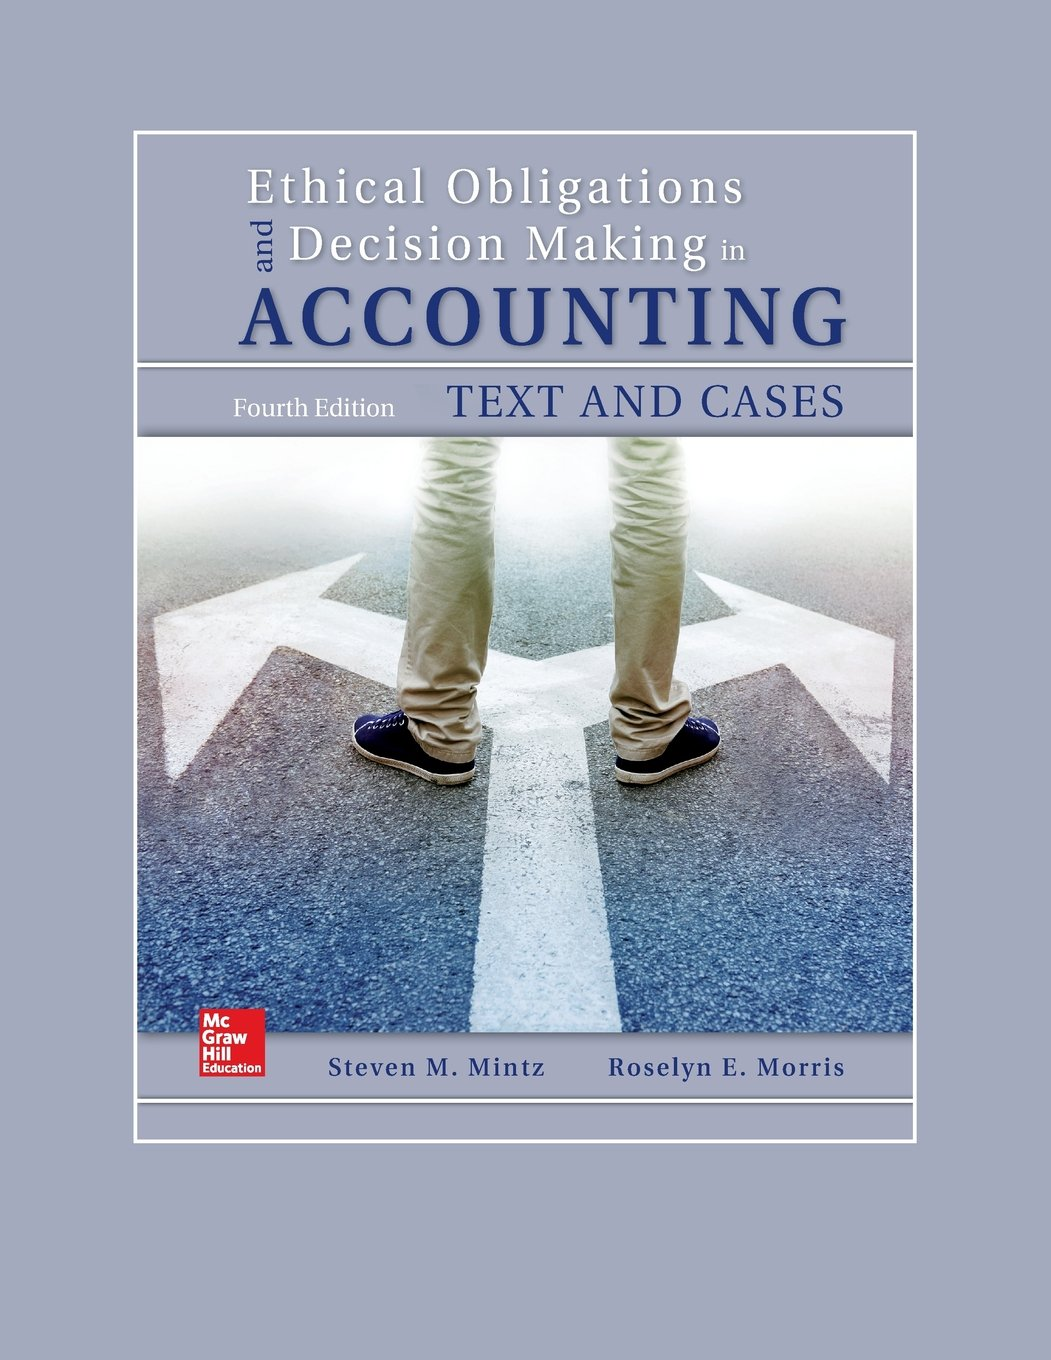 Ethical Obligations and Decision-Making in Accounting: Text and Cases (Book ONLY) by McGraw-Hill Education